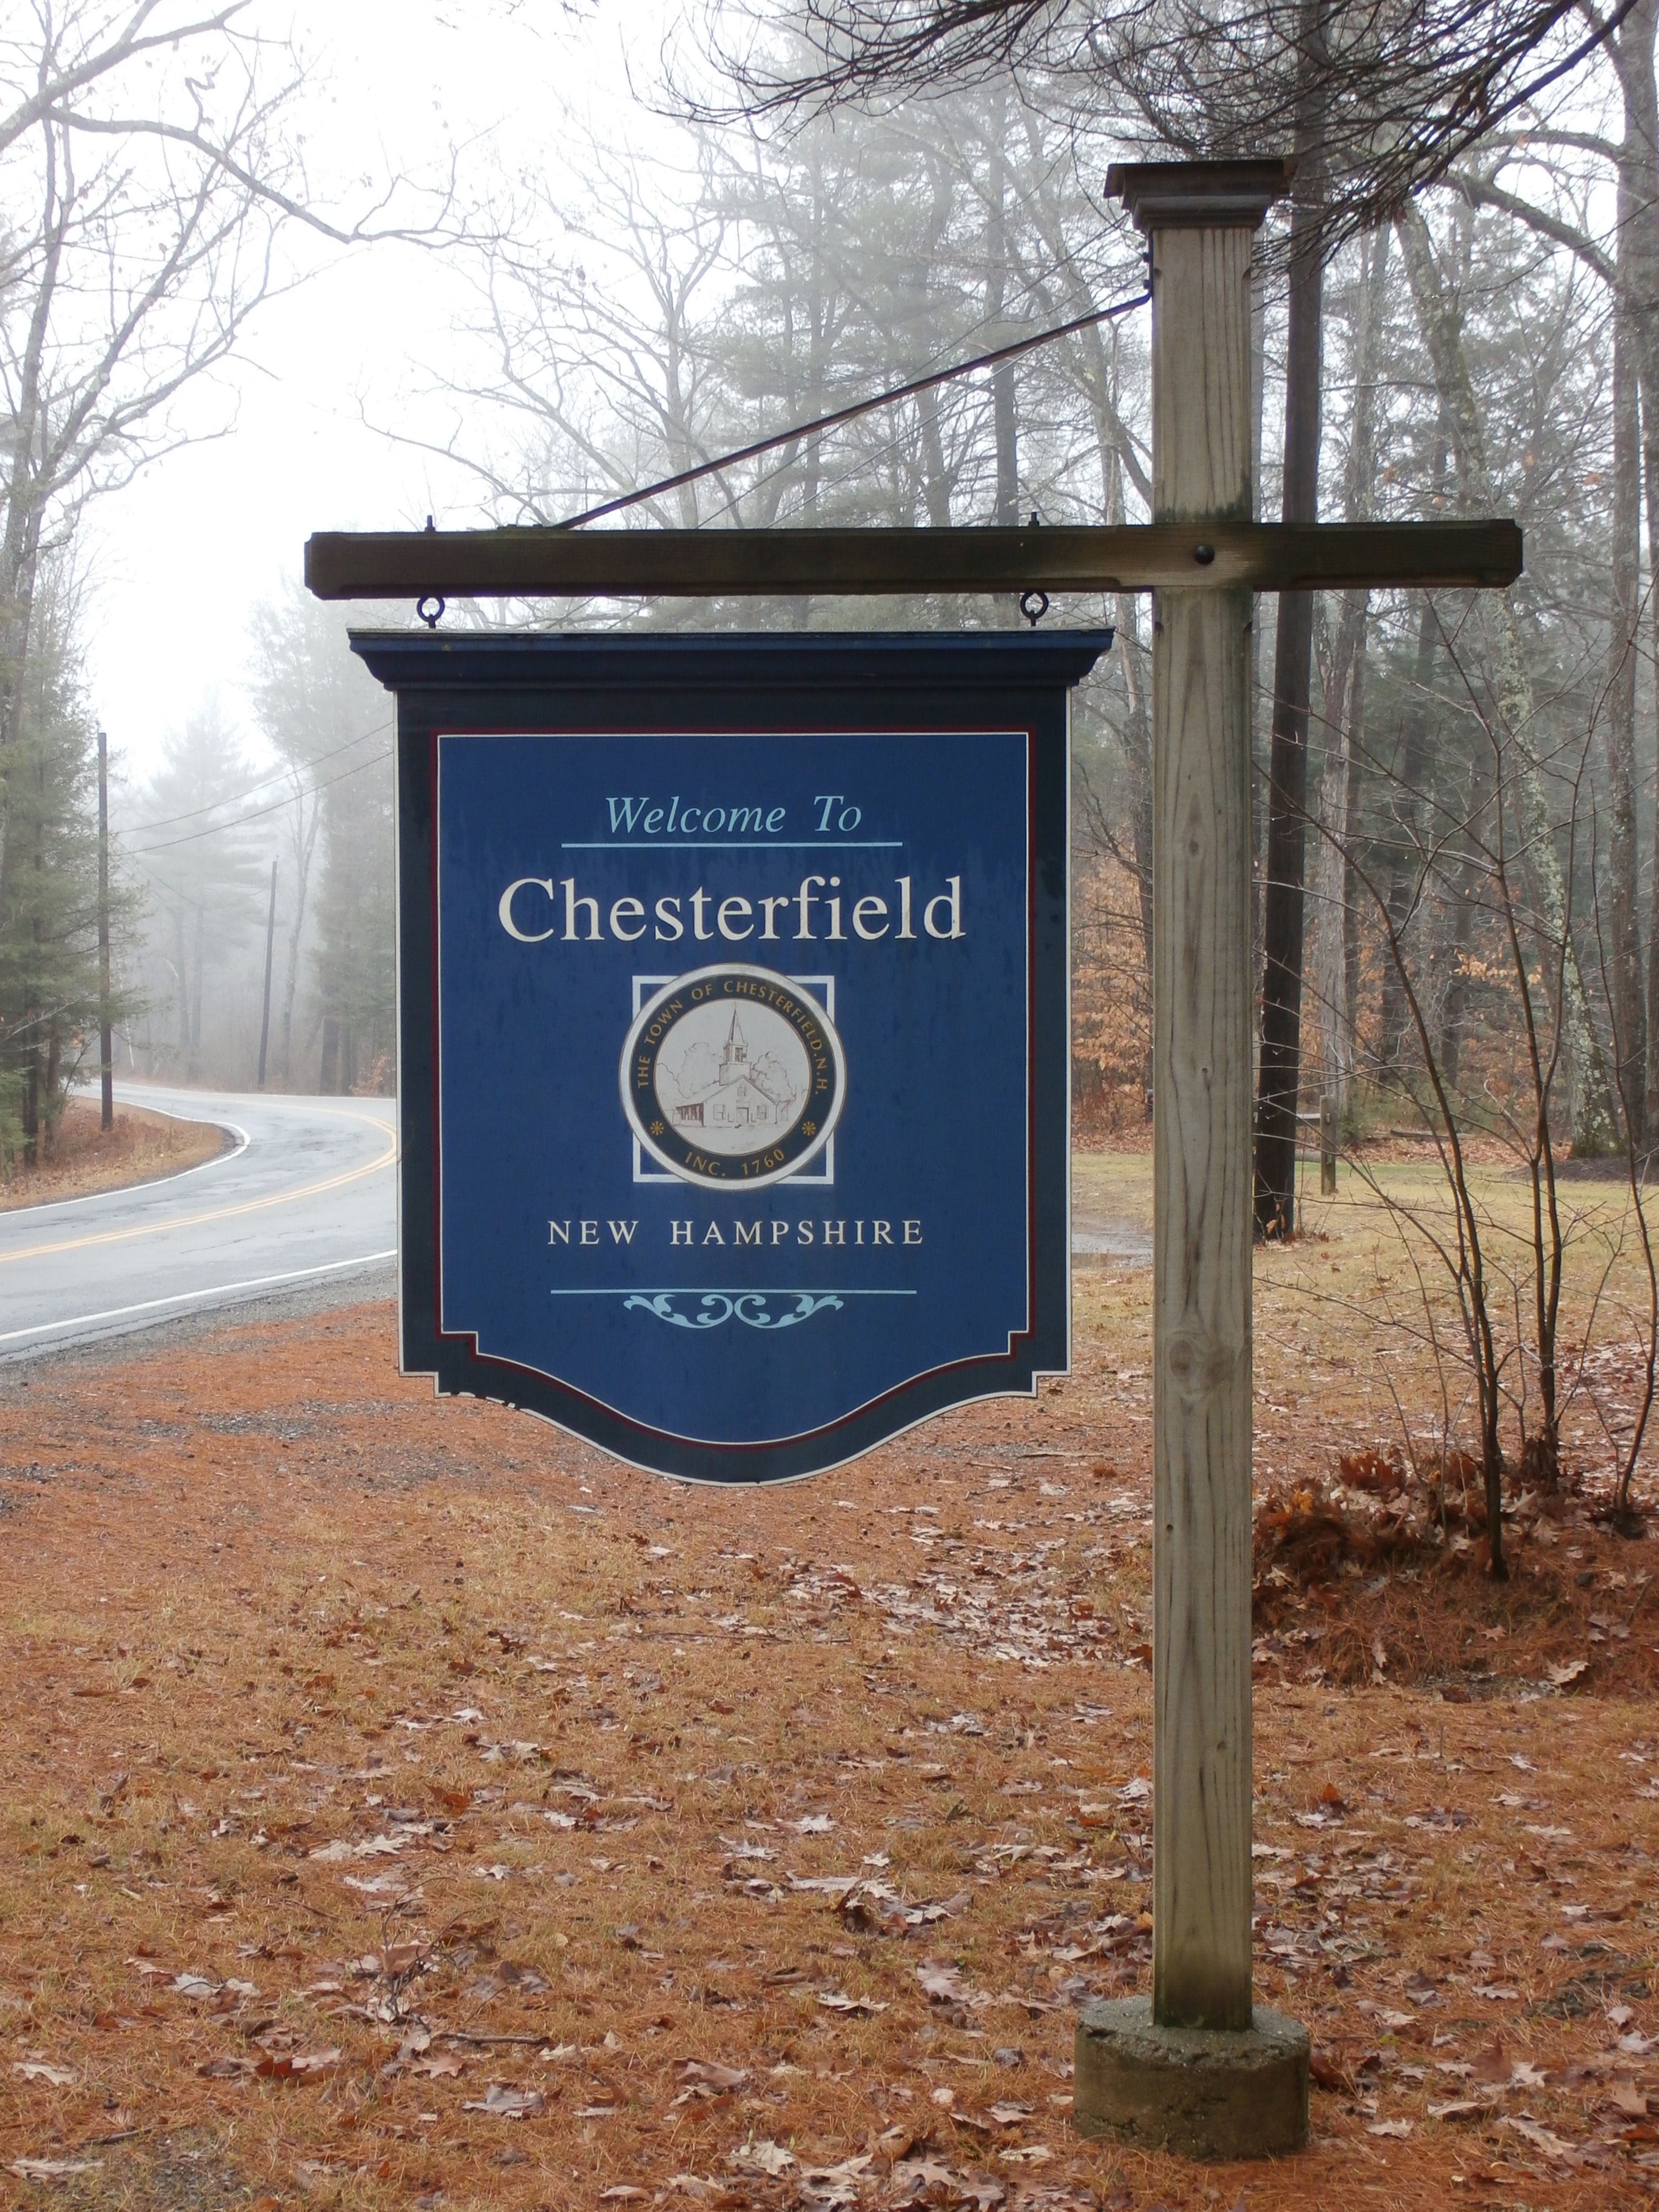 Chesterfield New Hampshire